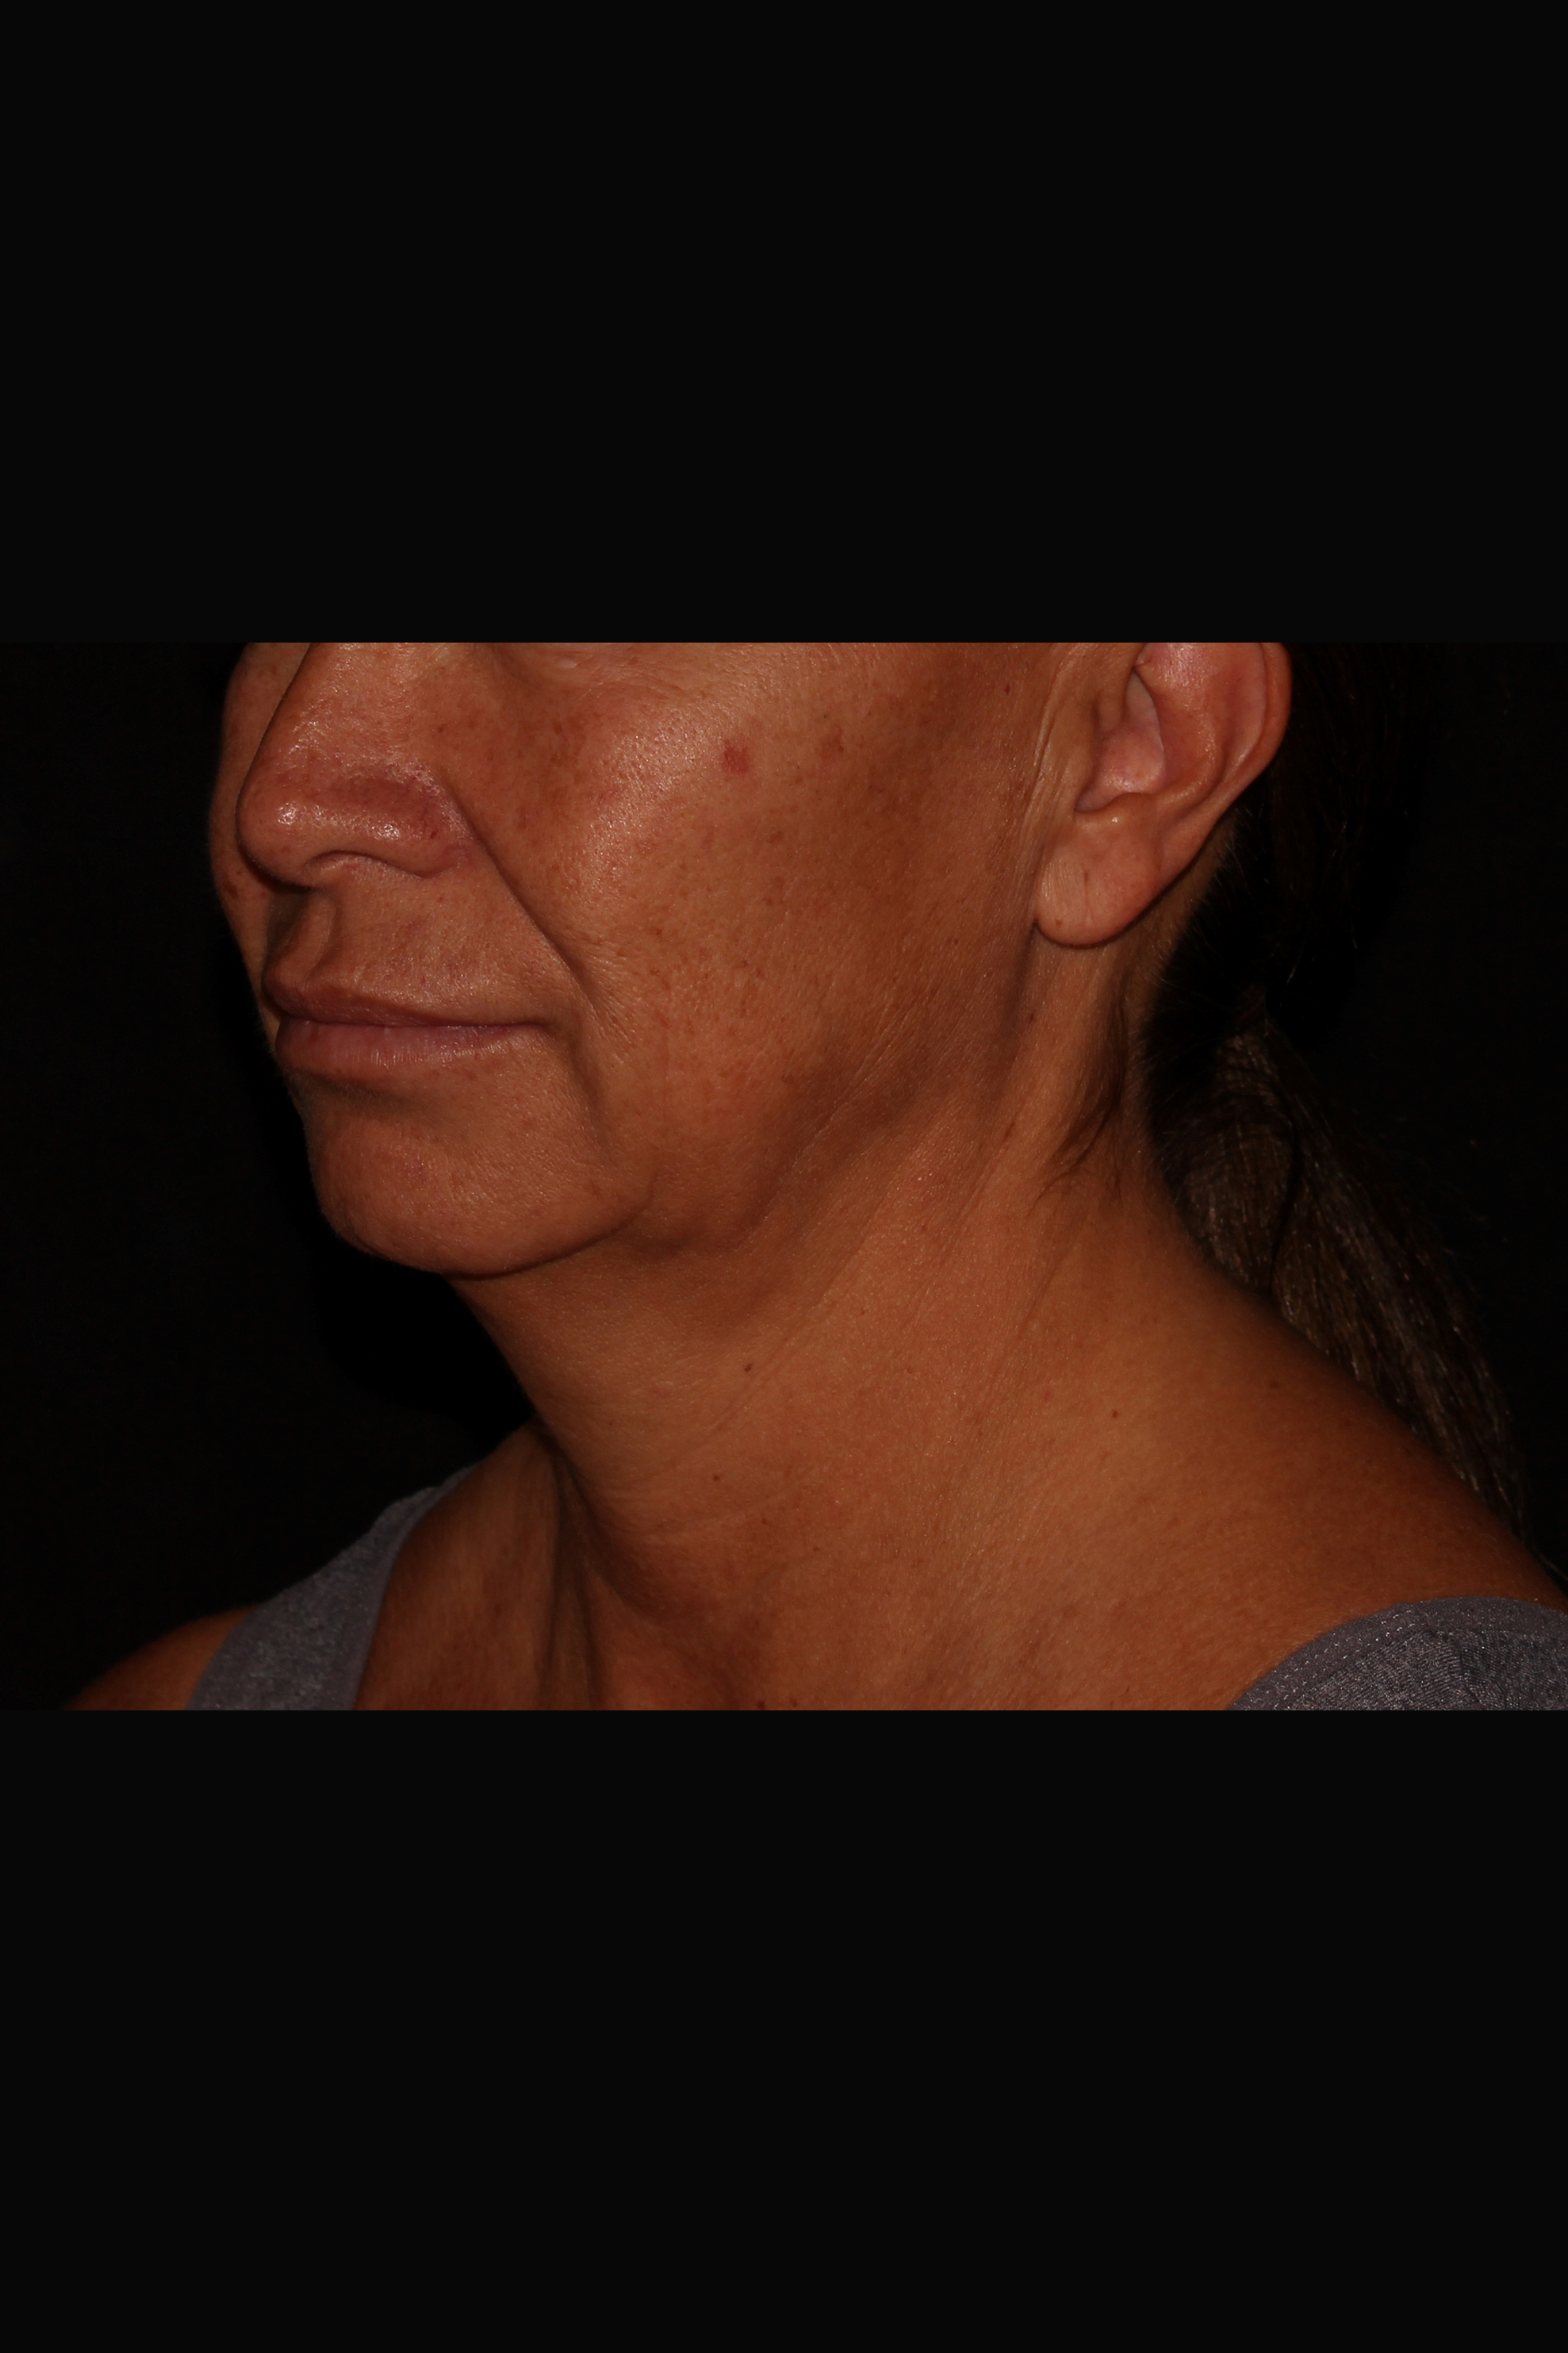 Before Neck Liposuction - Magic Tight to the Neck & Buccal Fat Pad Removal